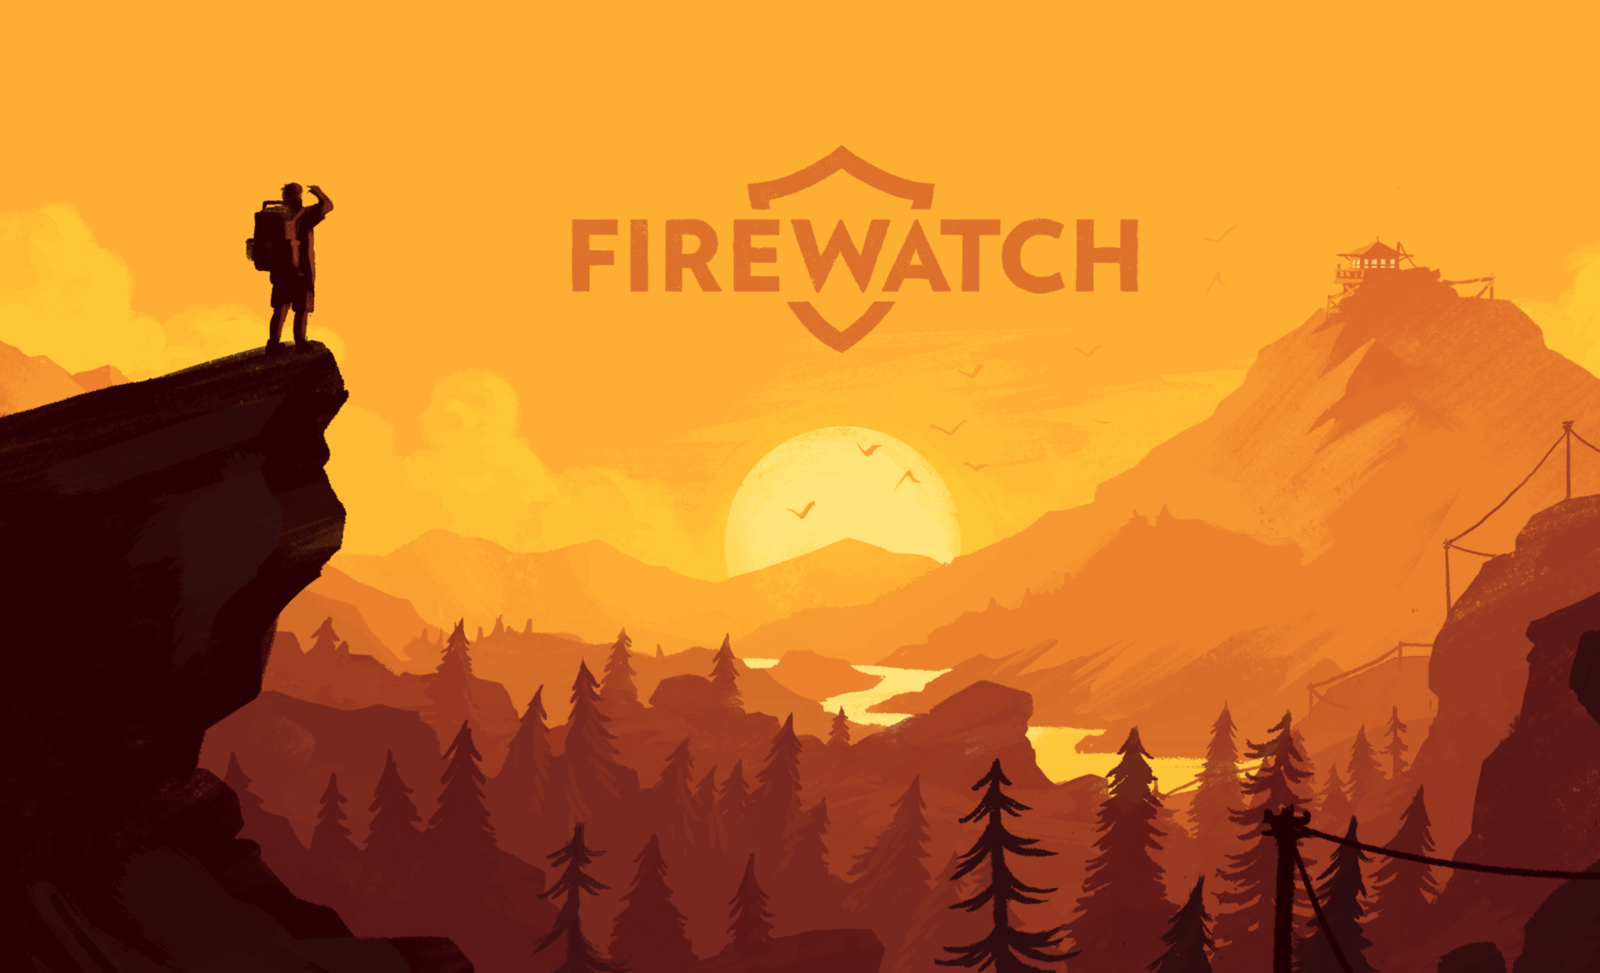 Firewatch being released on the Nintendo Switch December 17th 2018